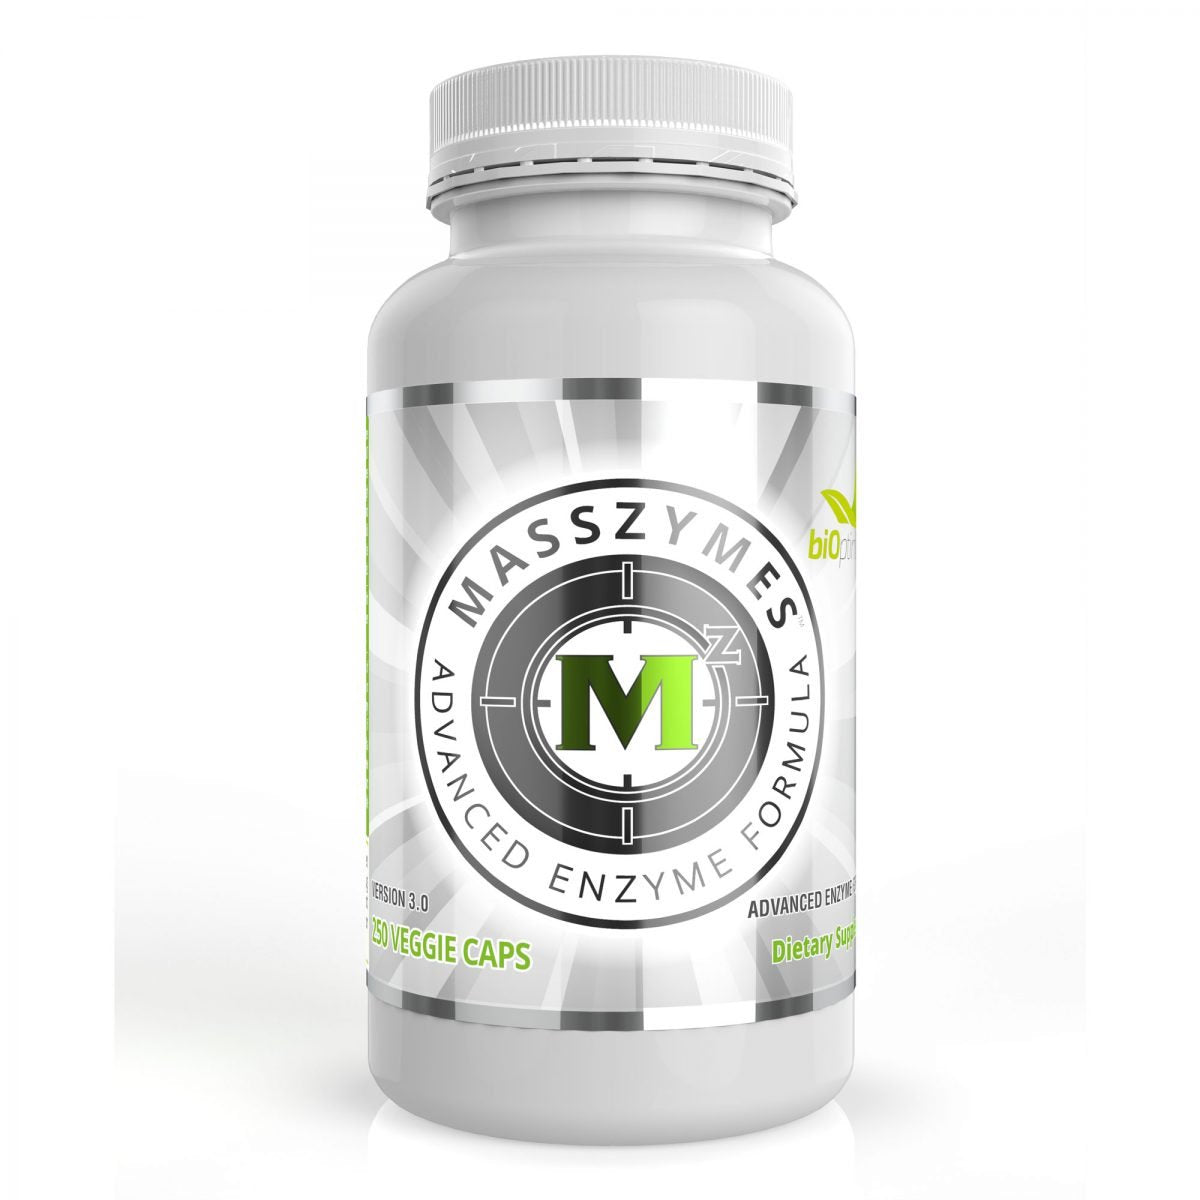 MASSZYMES - UpgradeTheAlpha Australia